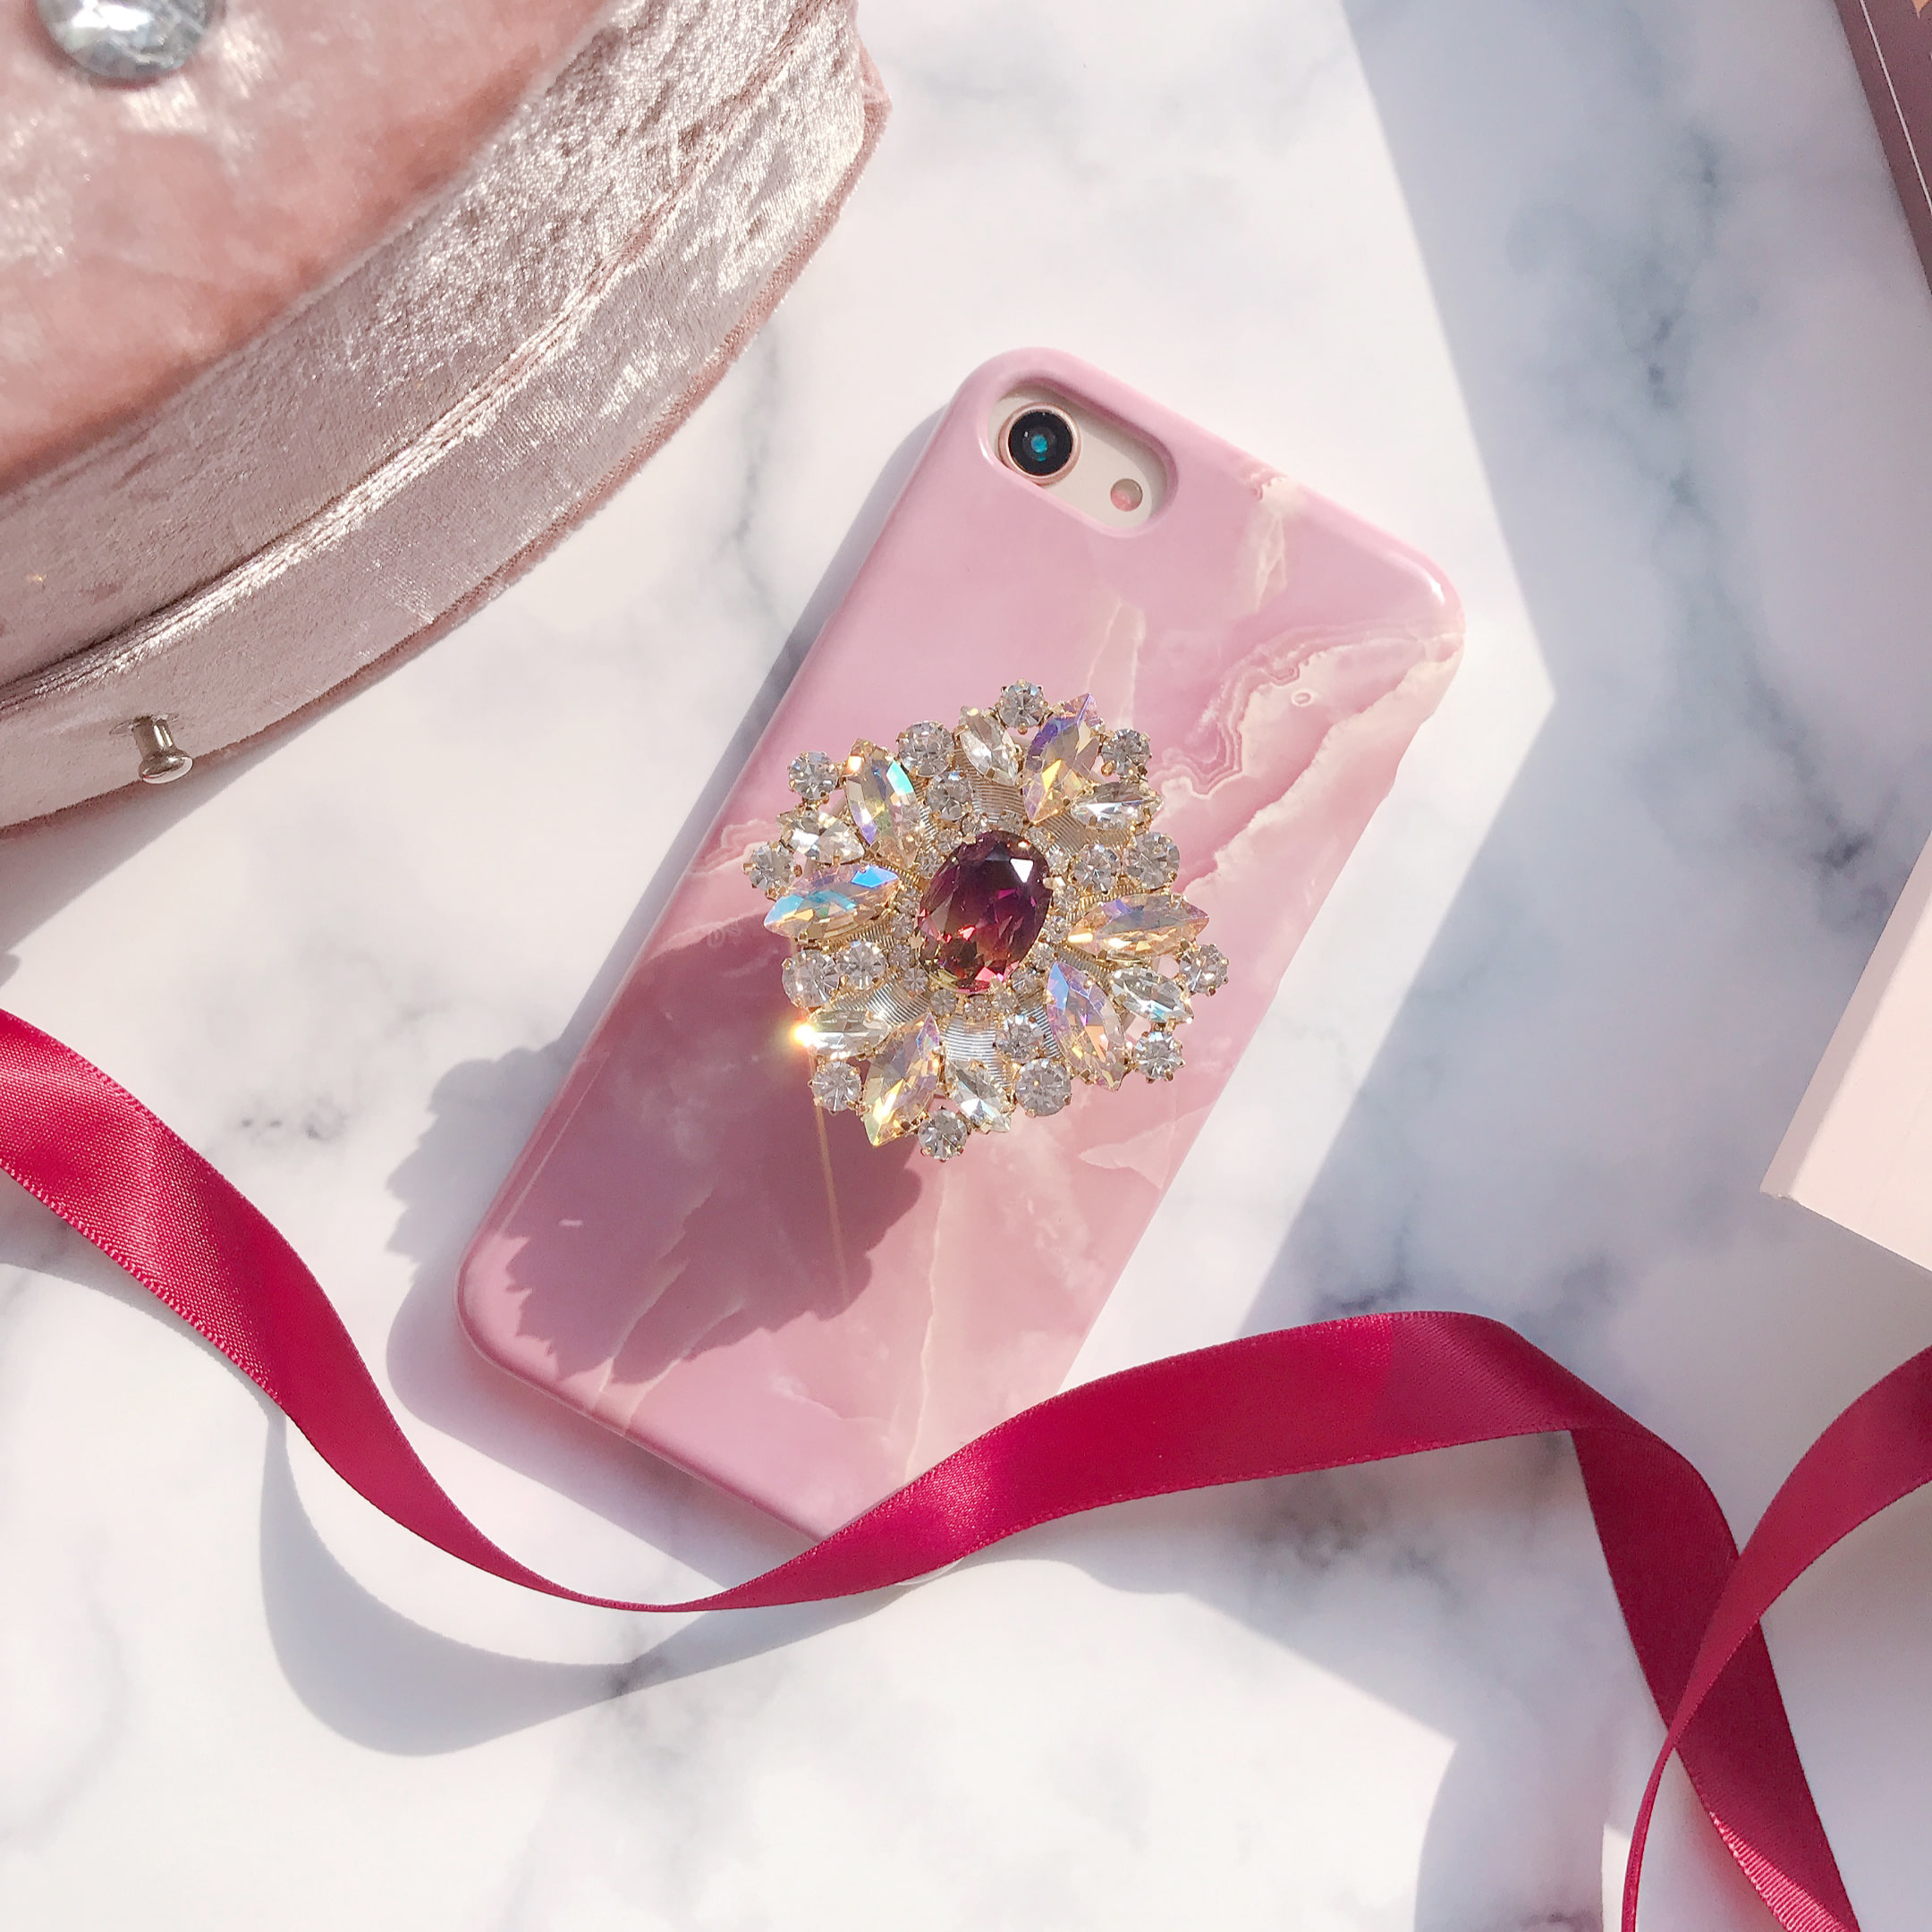 pale lustre phone case